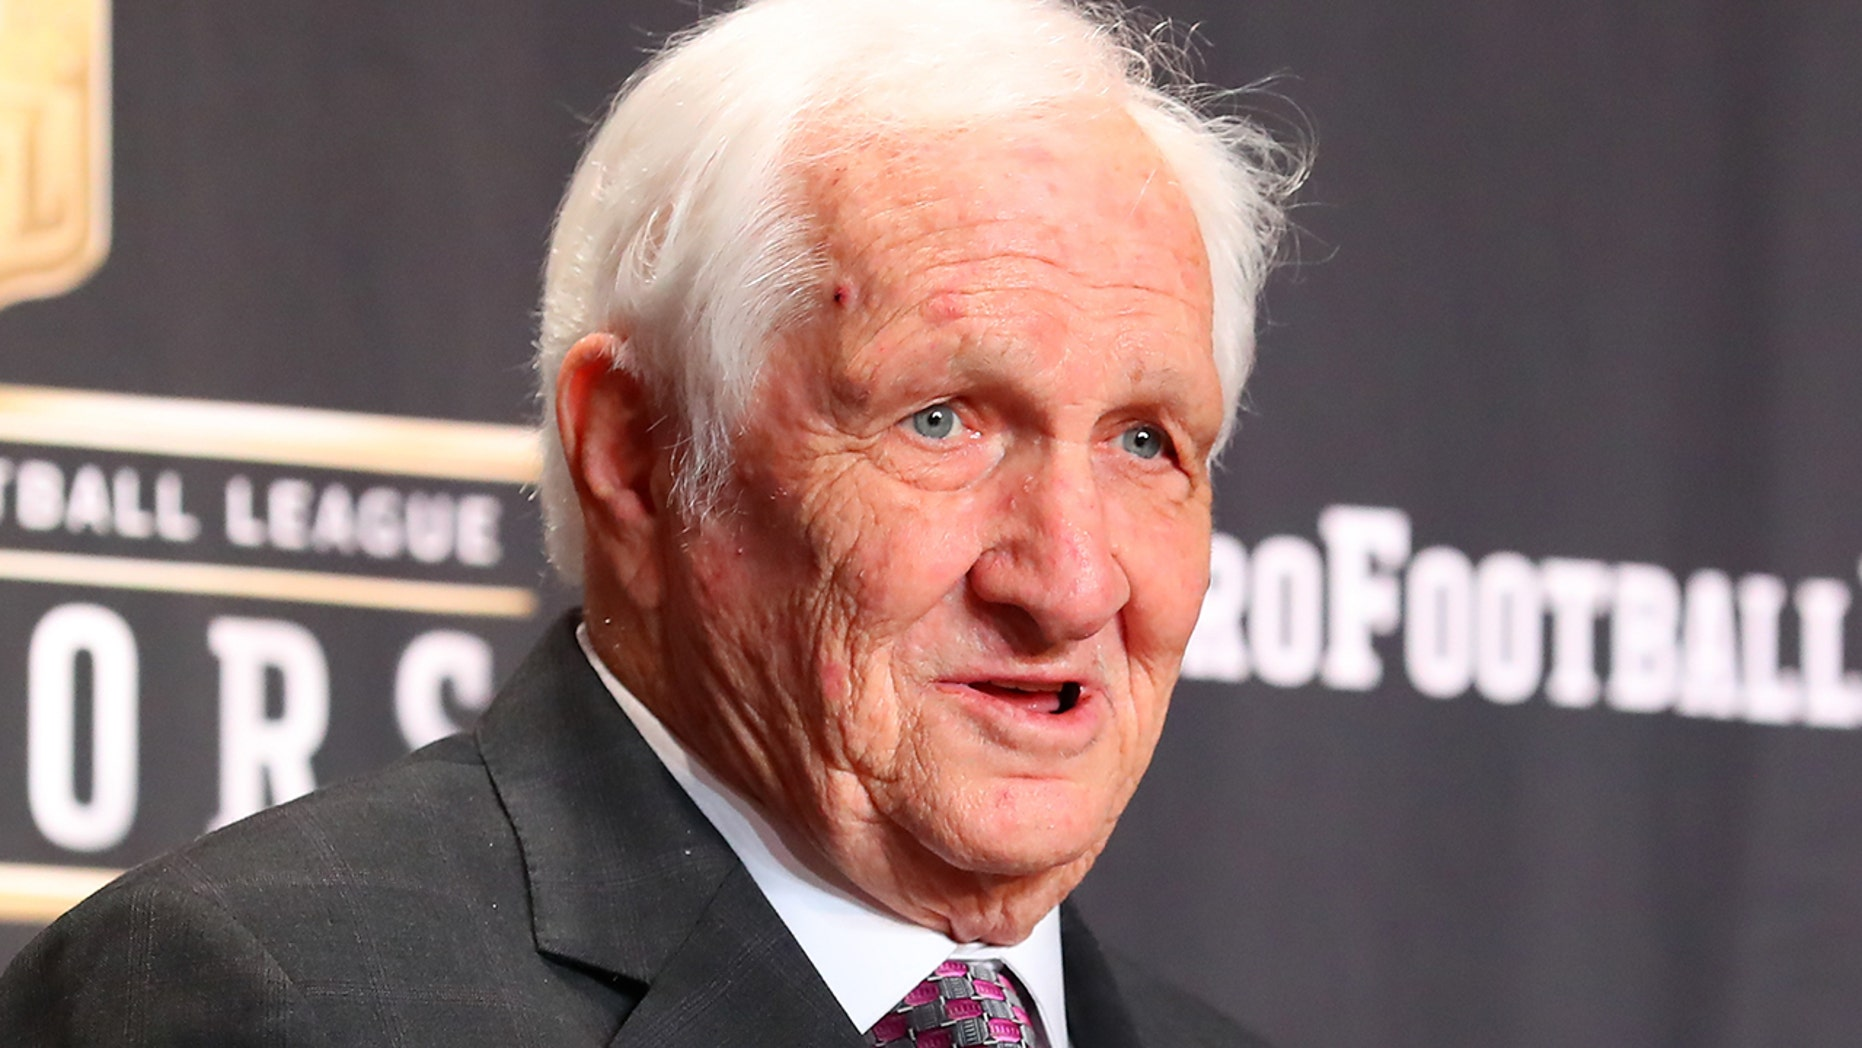 ATLANTA, GA - FEBRUARY 02: 2019 Hall Pro Football Hall of Fame inductee Gil Brandt on February 2, 2019 at the Fox Theatre in Atlanta, GA. (Photo by Rich Graessle/Icon Sportswire via Getty Images)